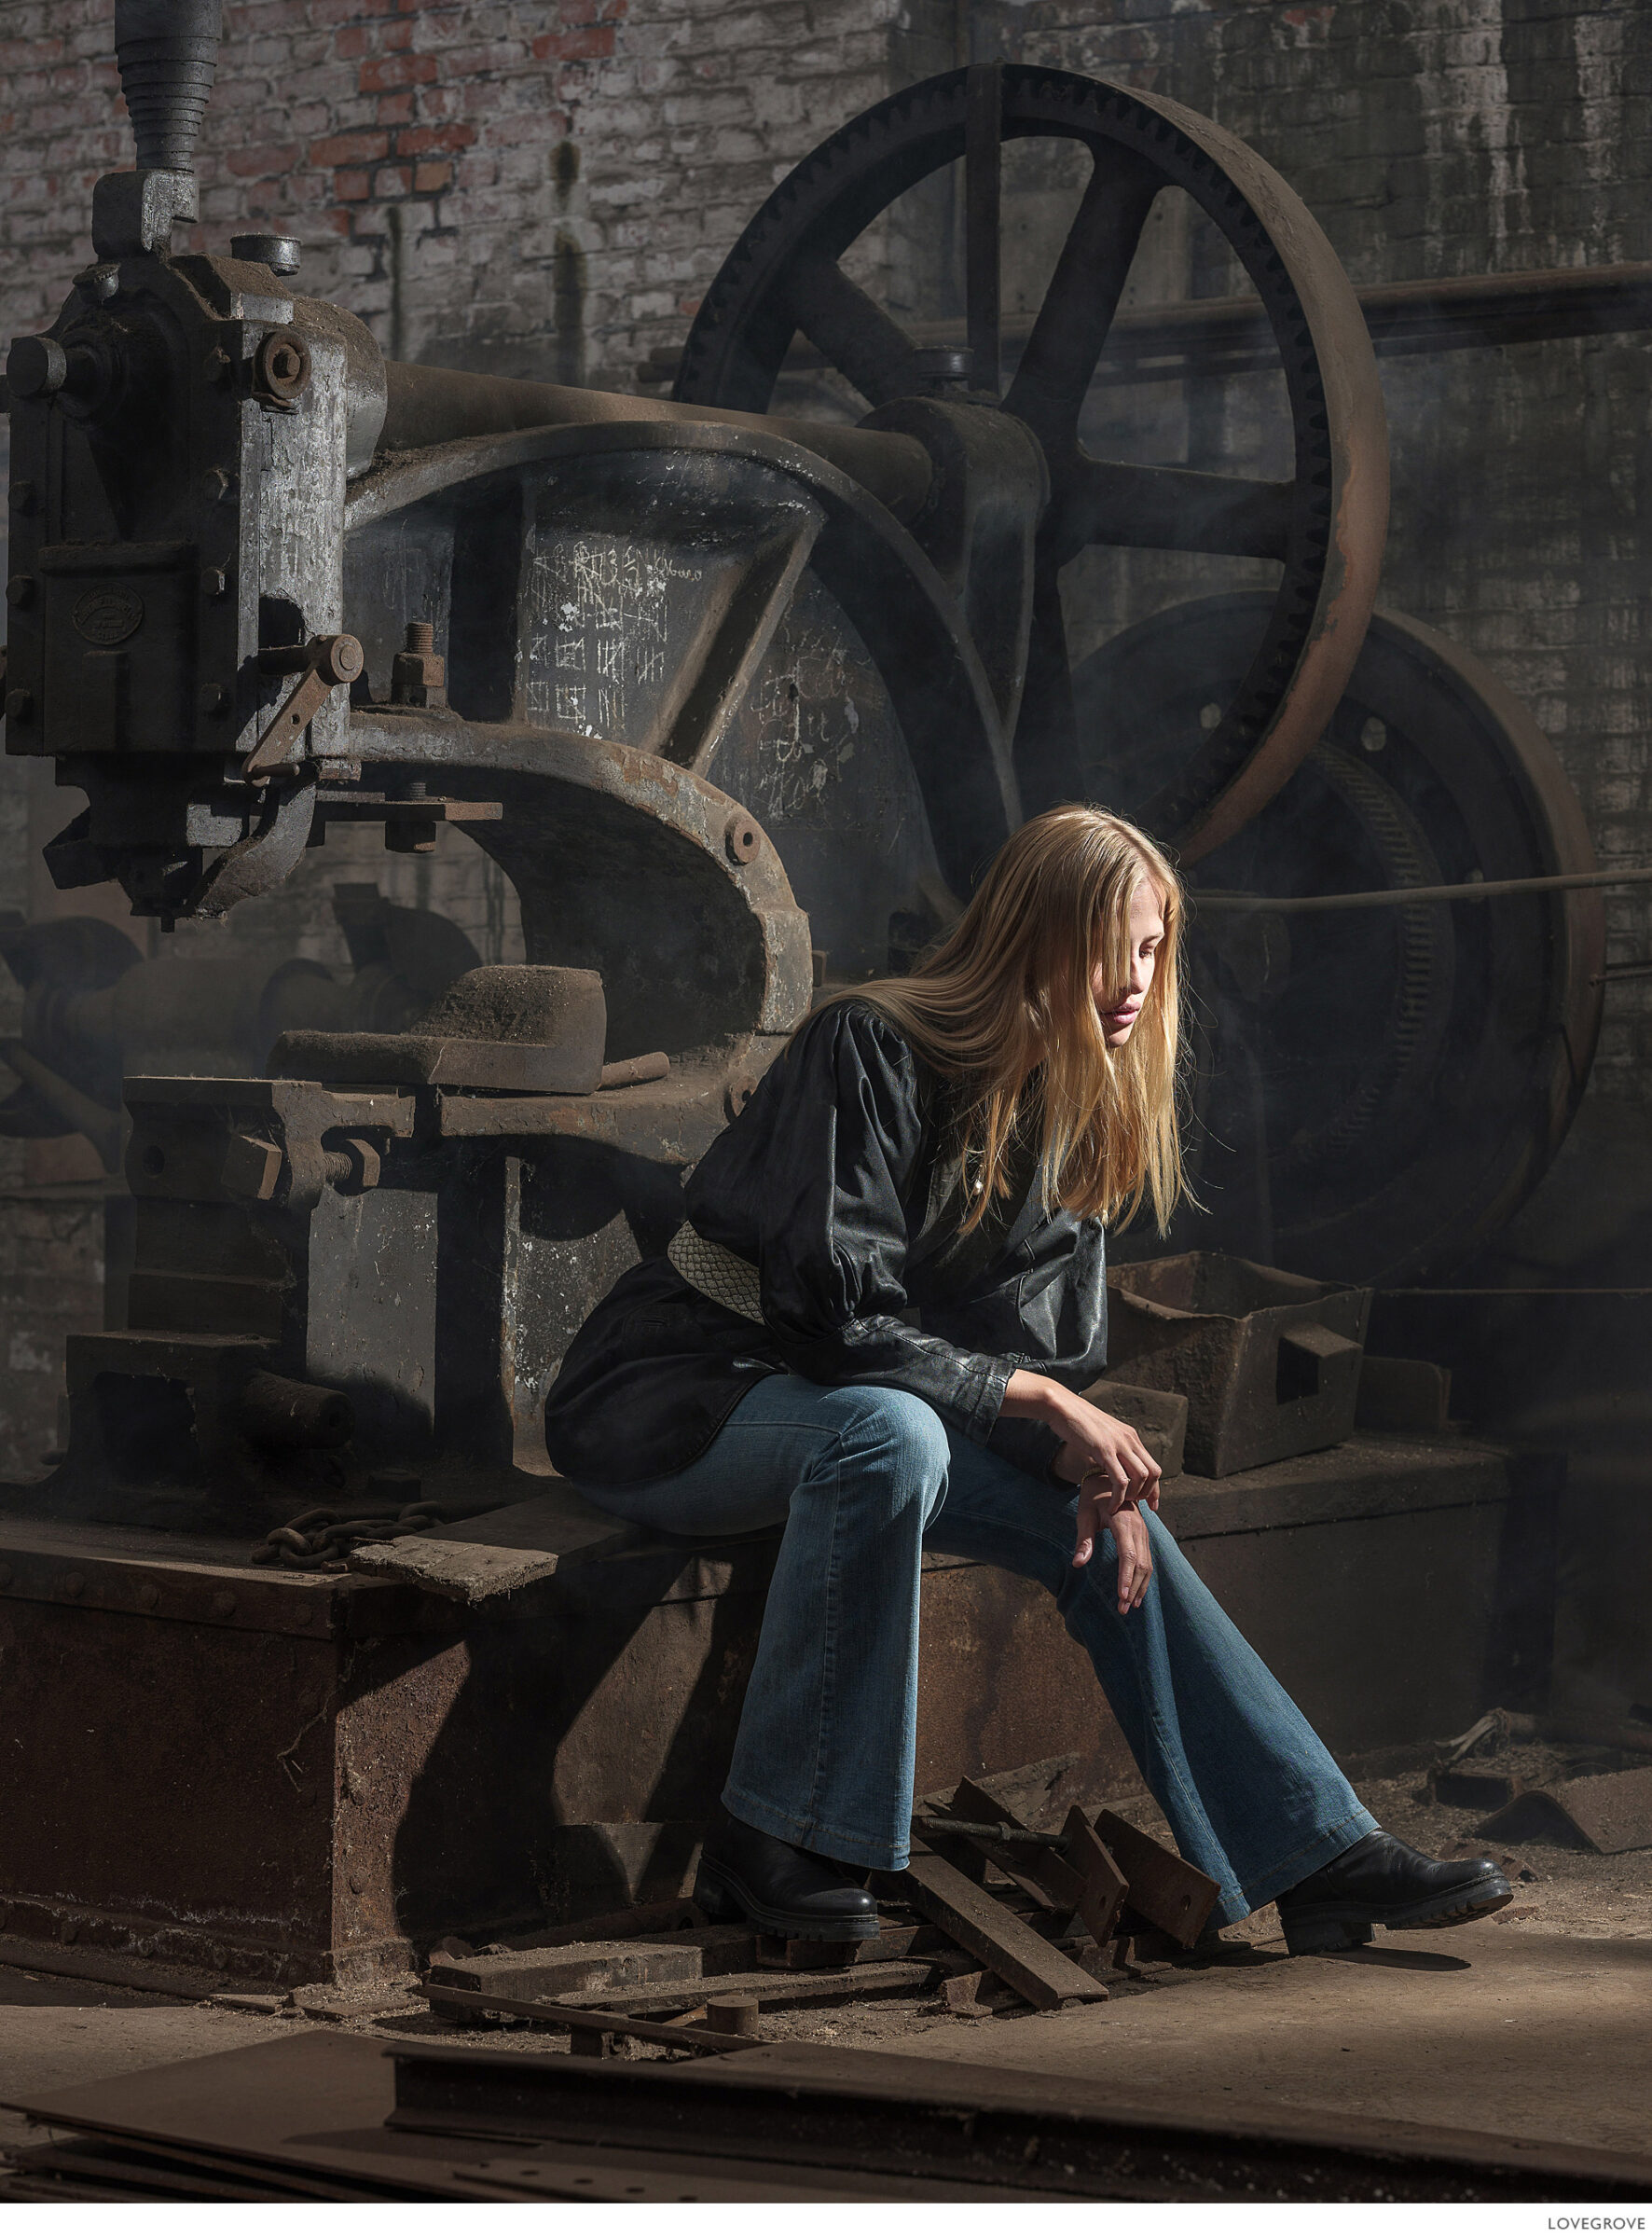 Jolien sits on a machine in this industrial age workshop